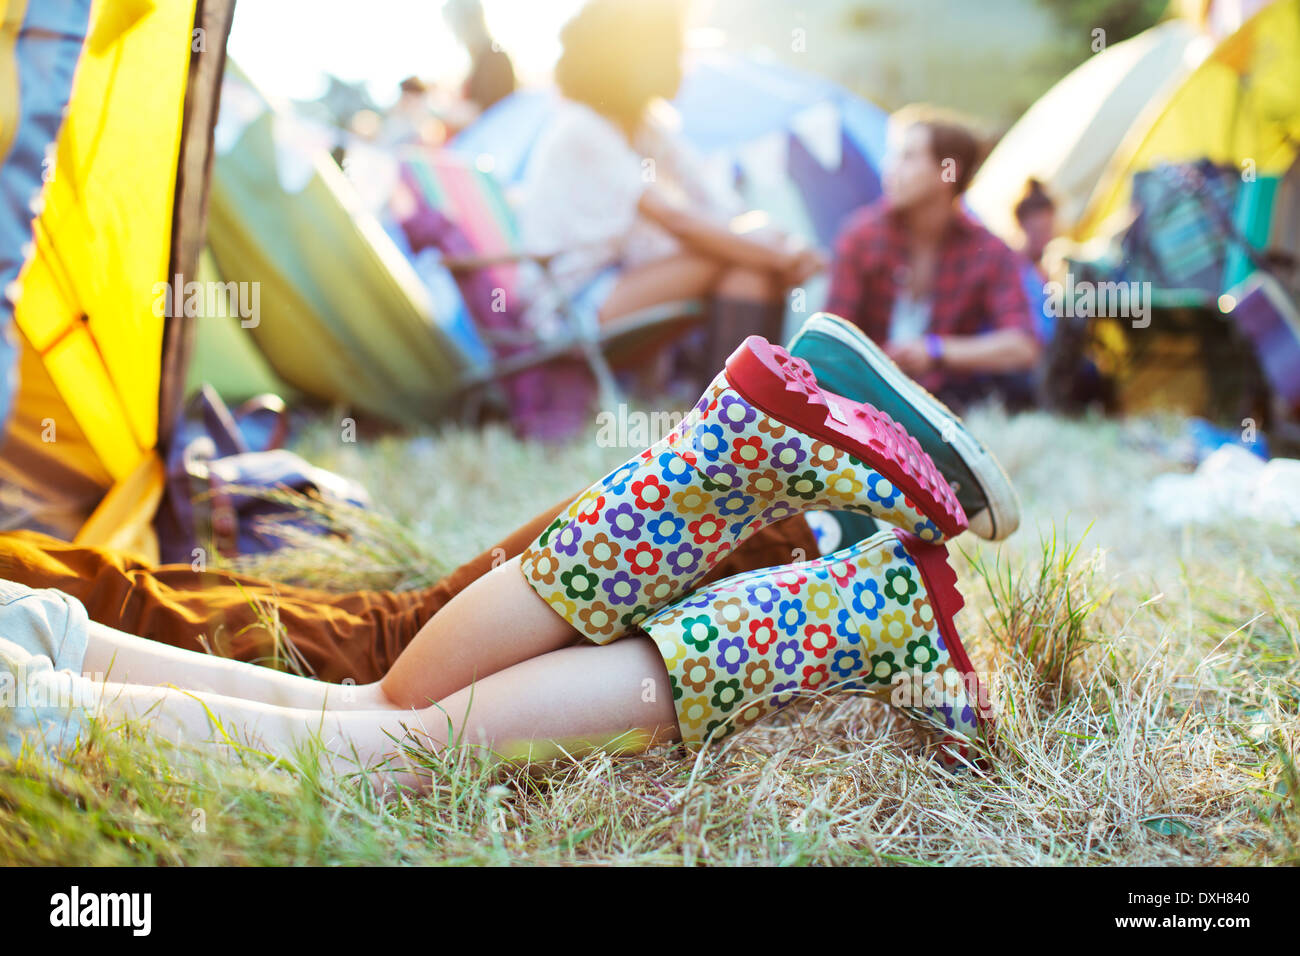 CoupleÍs legs sticking out of tent at music festival - Stock Image